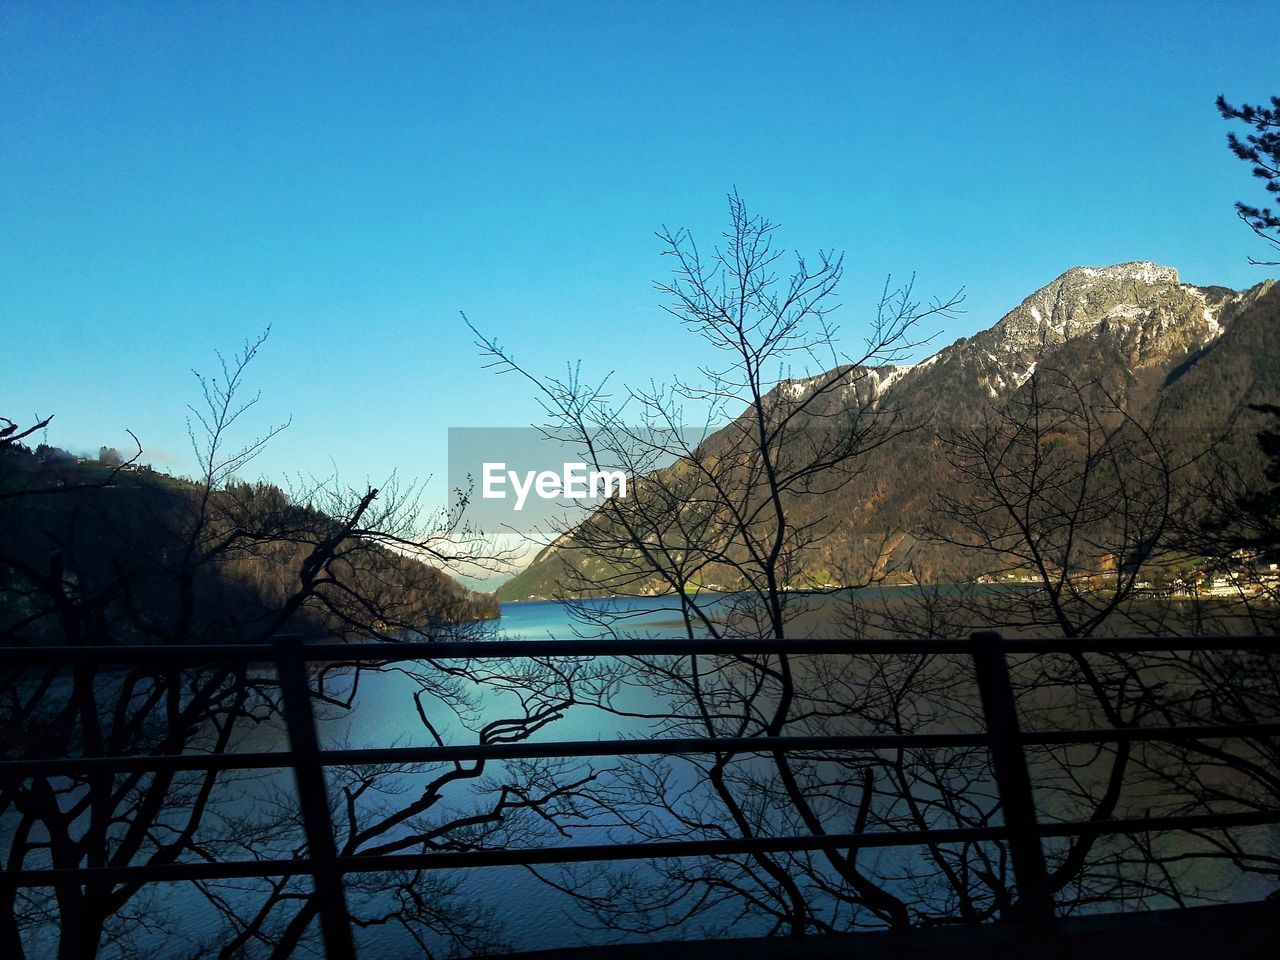 BARE TREES BY LAKE AGAINST CLEAR BLUE SKY